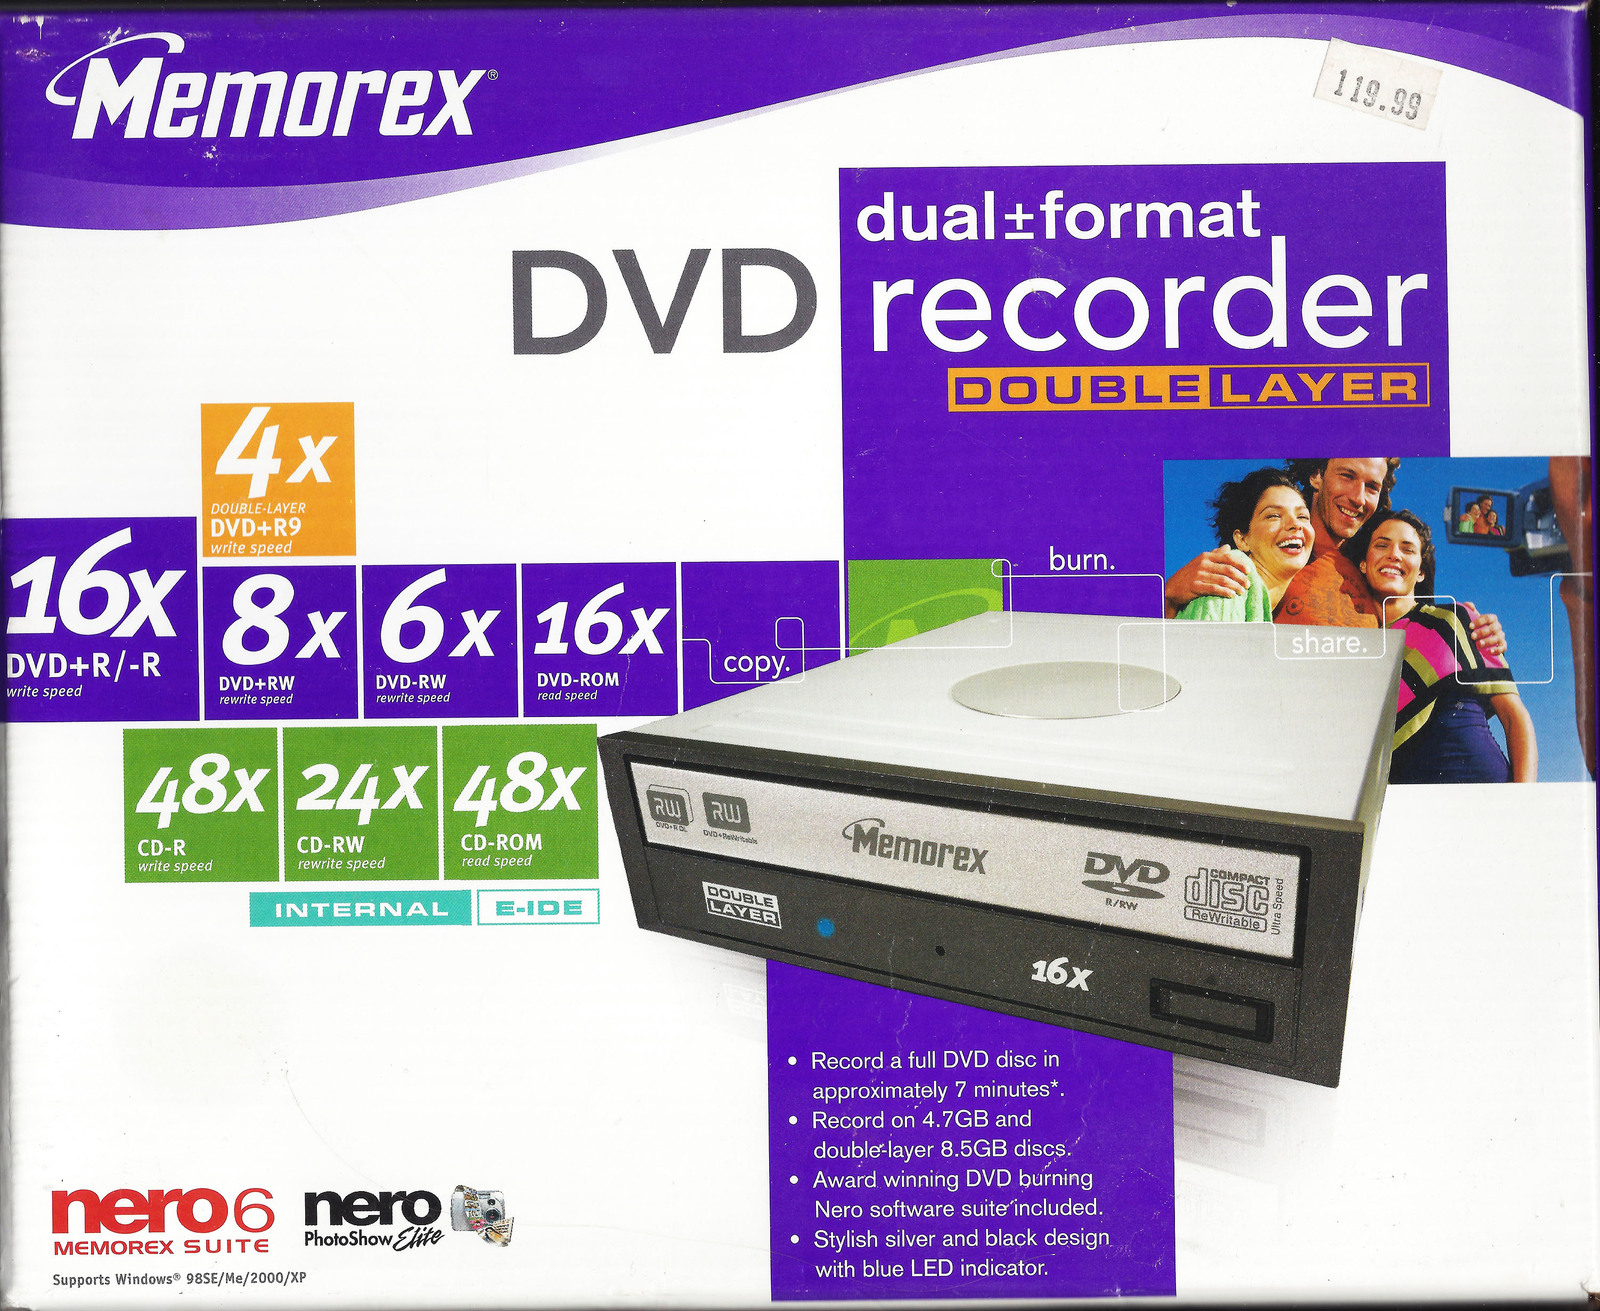 used memorex dvd recorder for sale 104 ads in us. Black Bedroom Furniture Sets. Home Design Ideas